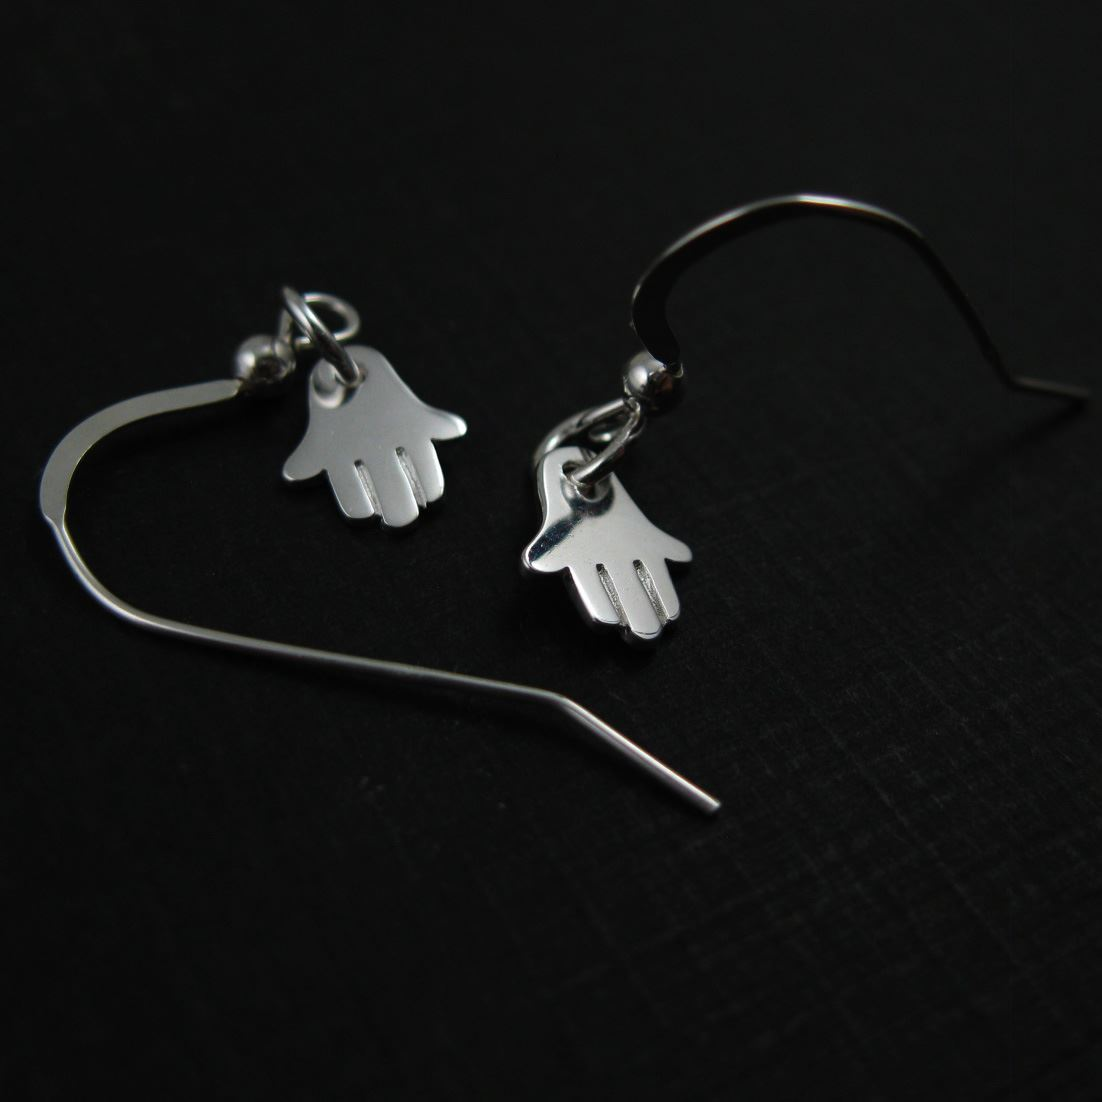 925 Sterling Silver Jewelry Set- Hasma Hand Charm